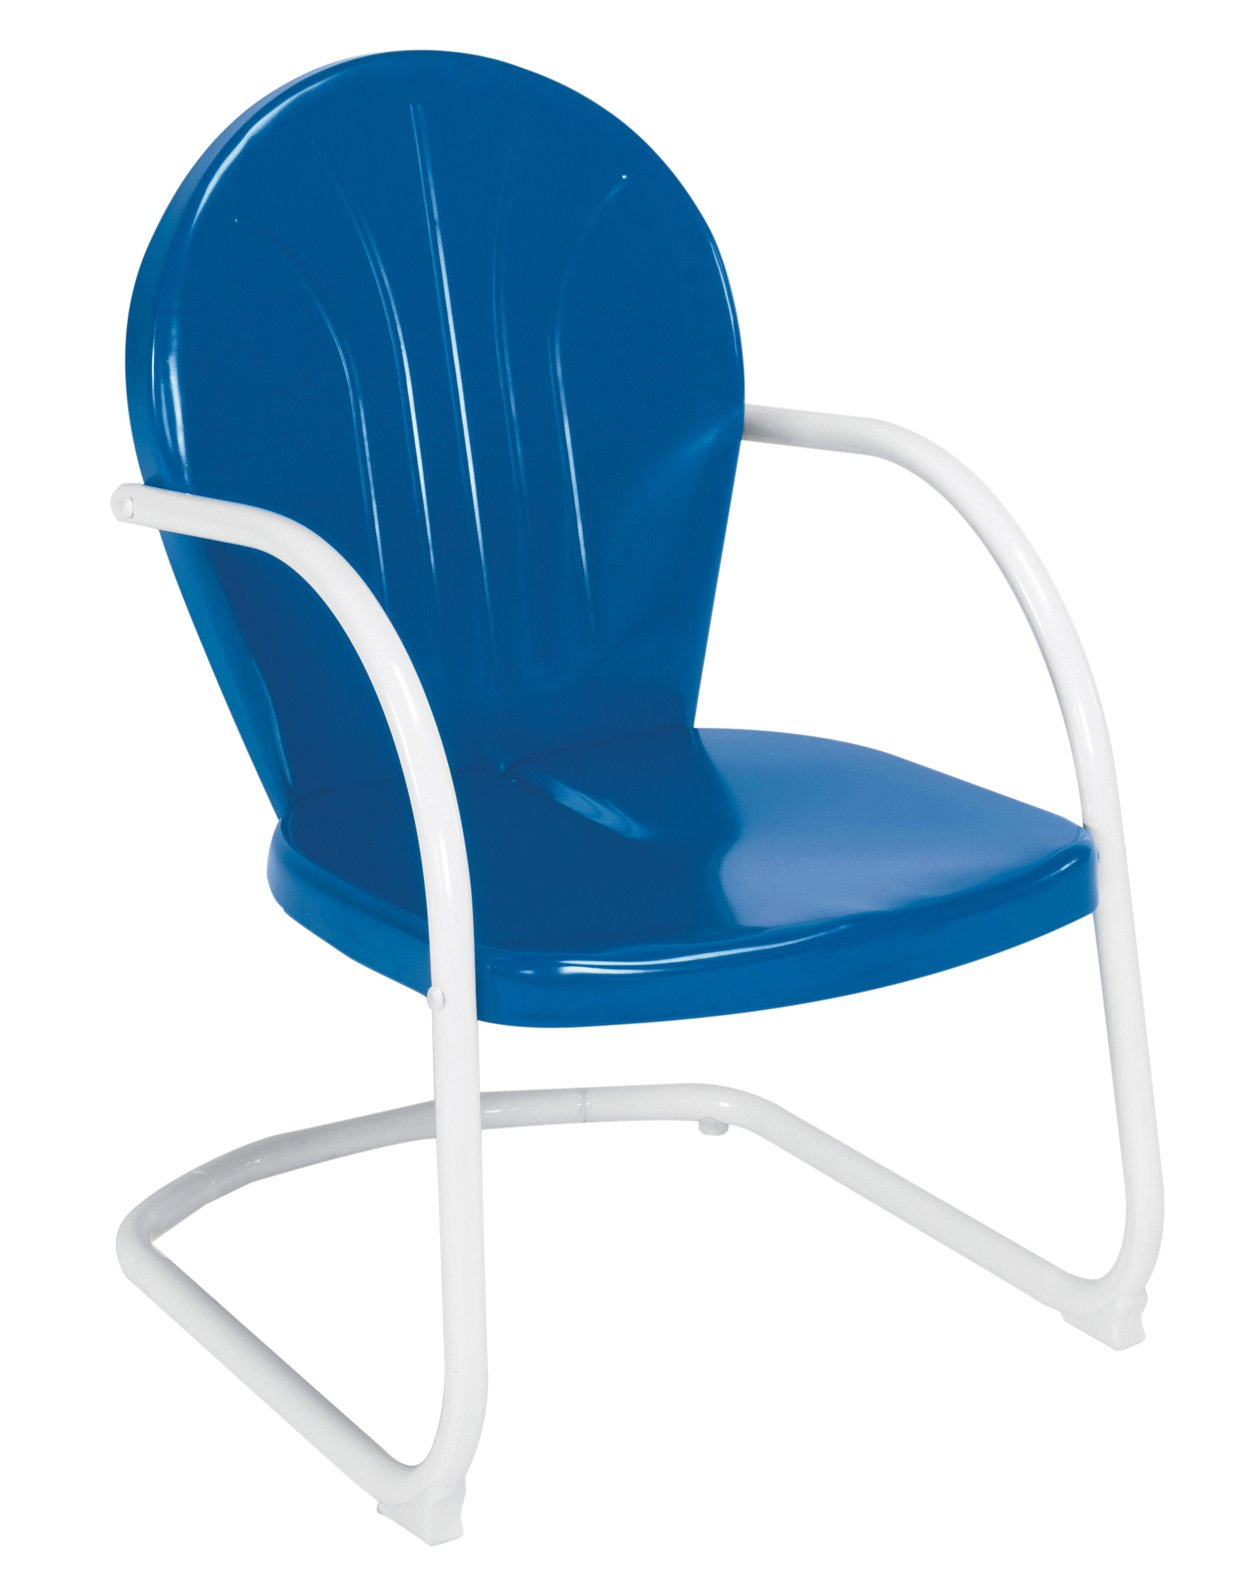 Jack Post BH-20BL Retro Chair, Blue